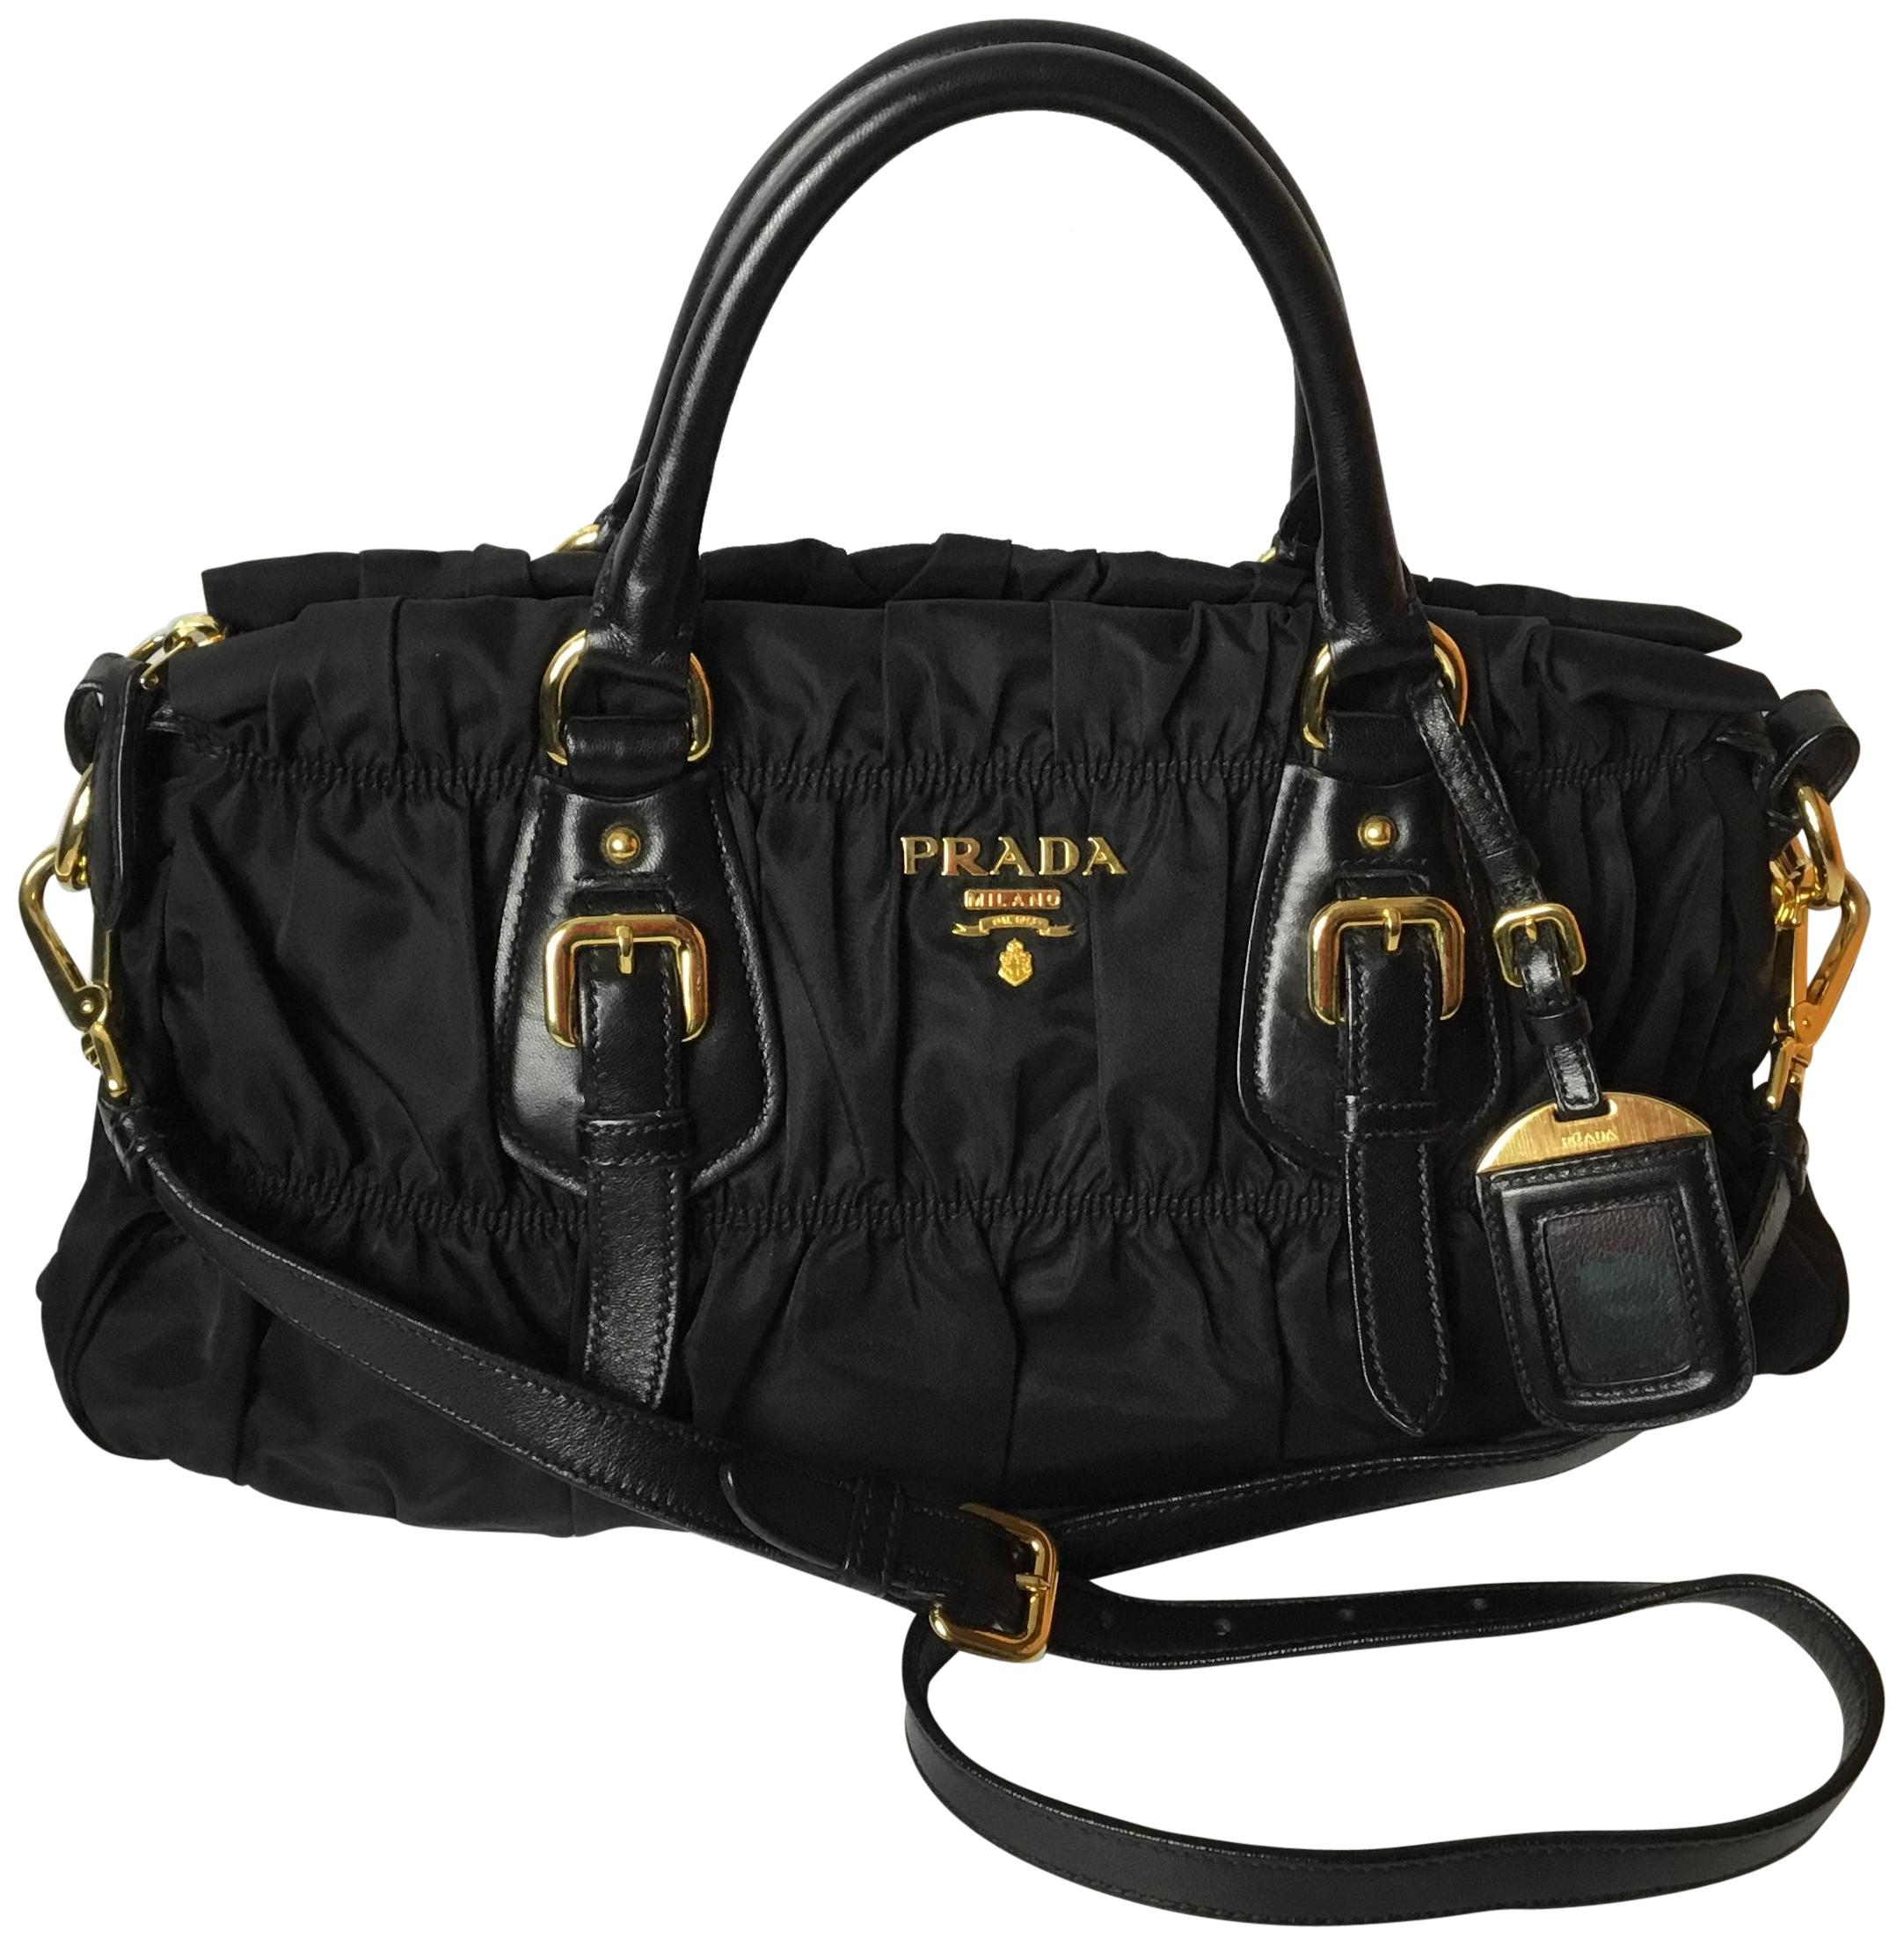 6cd5f2114bd8a5 ... cheap prada tessuto gaufre ner crossbody alma neverfull shoulder bag  23180 a5a2c